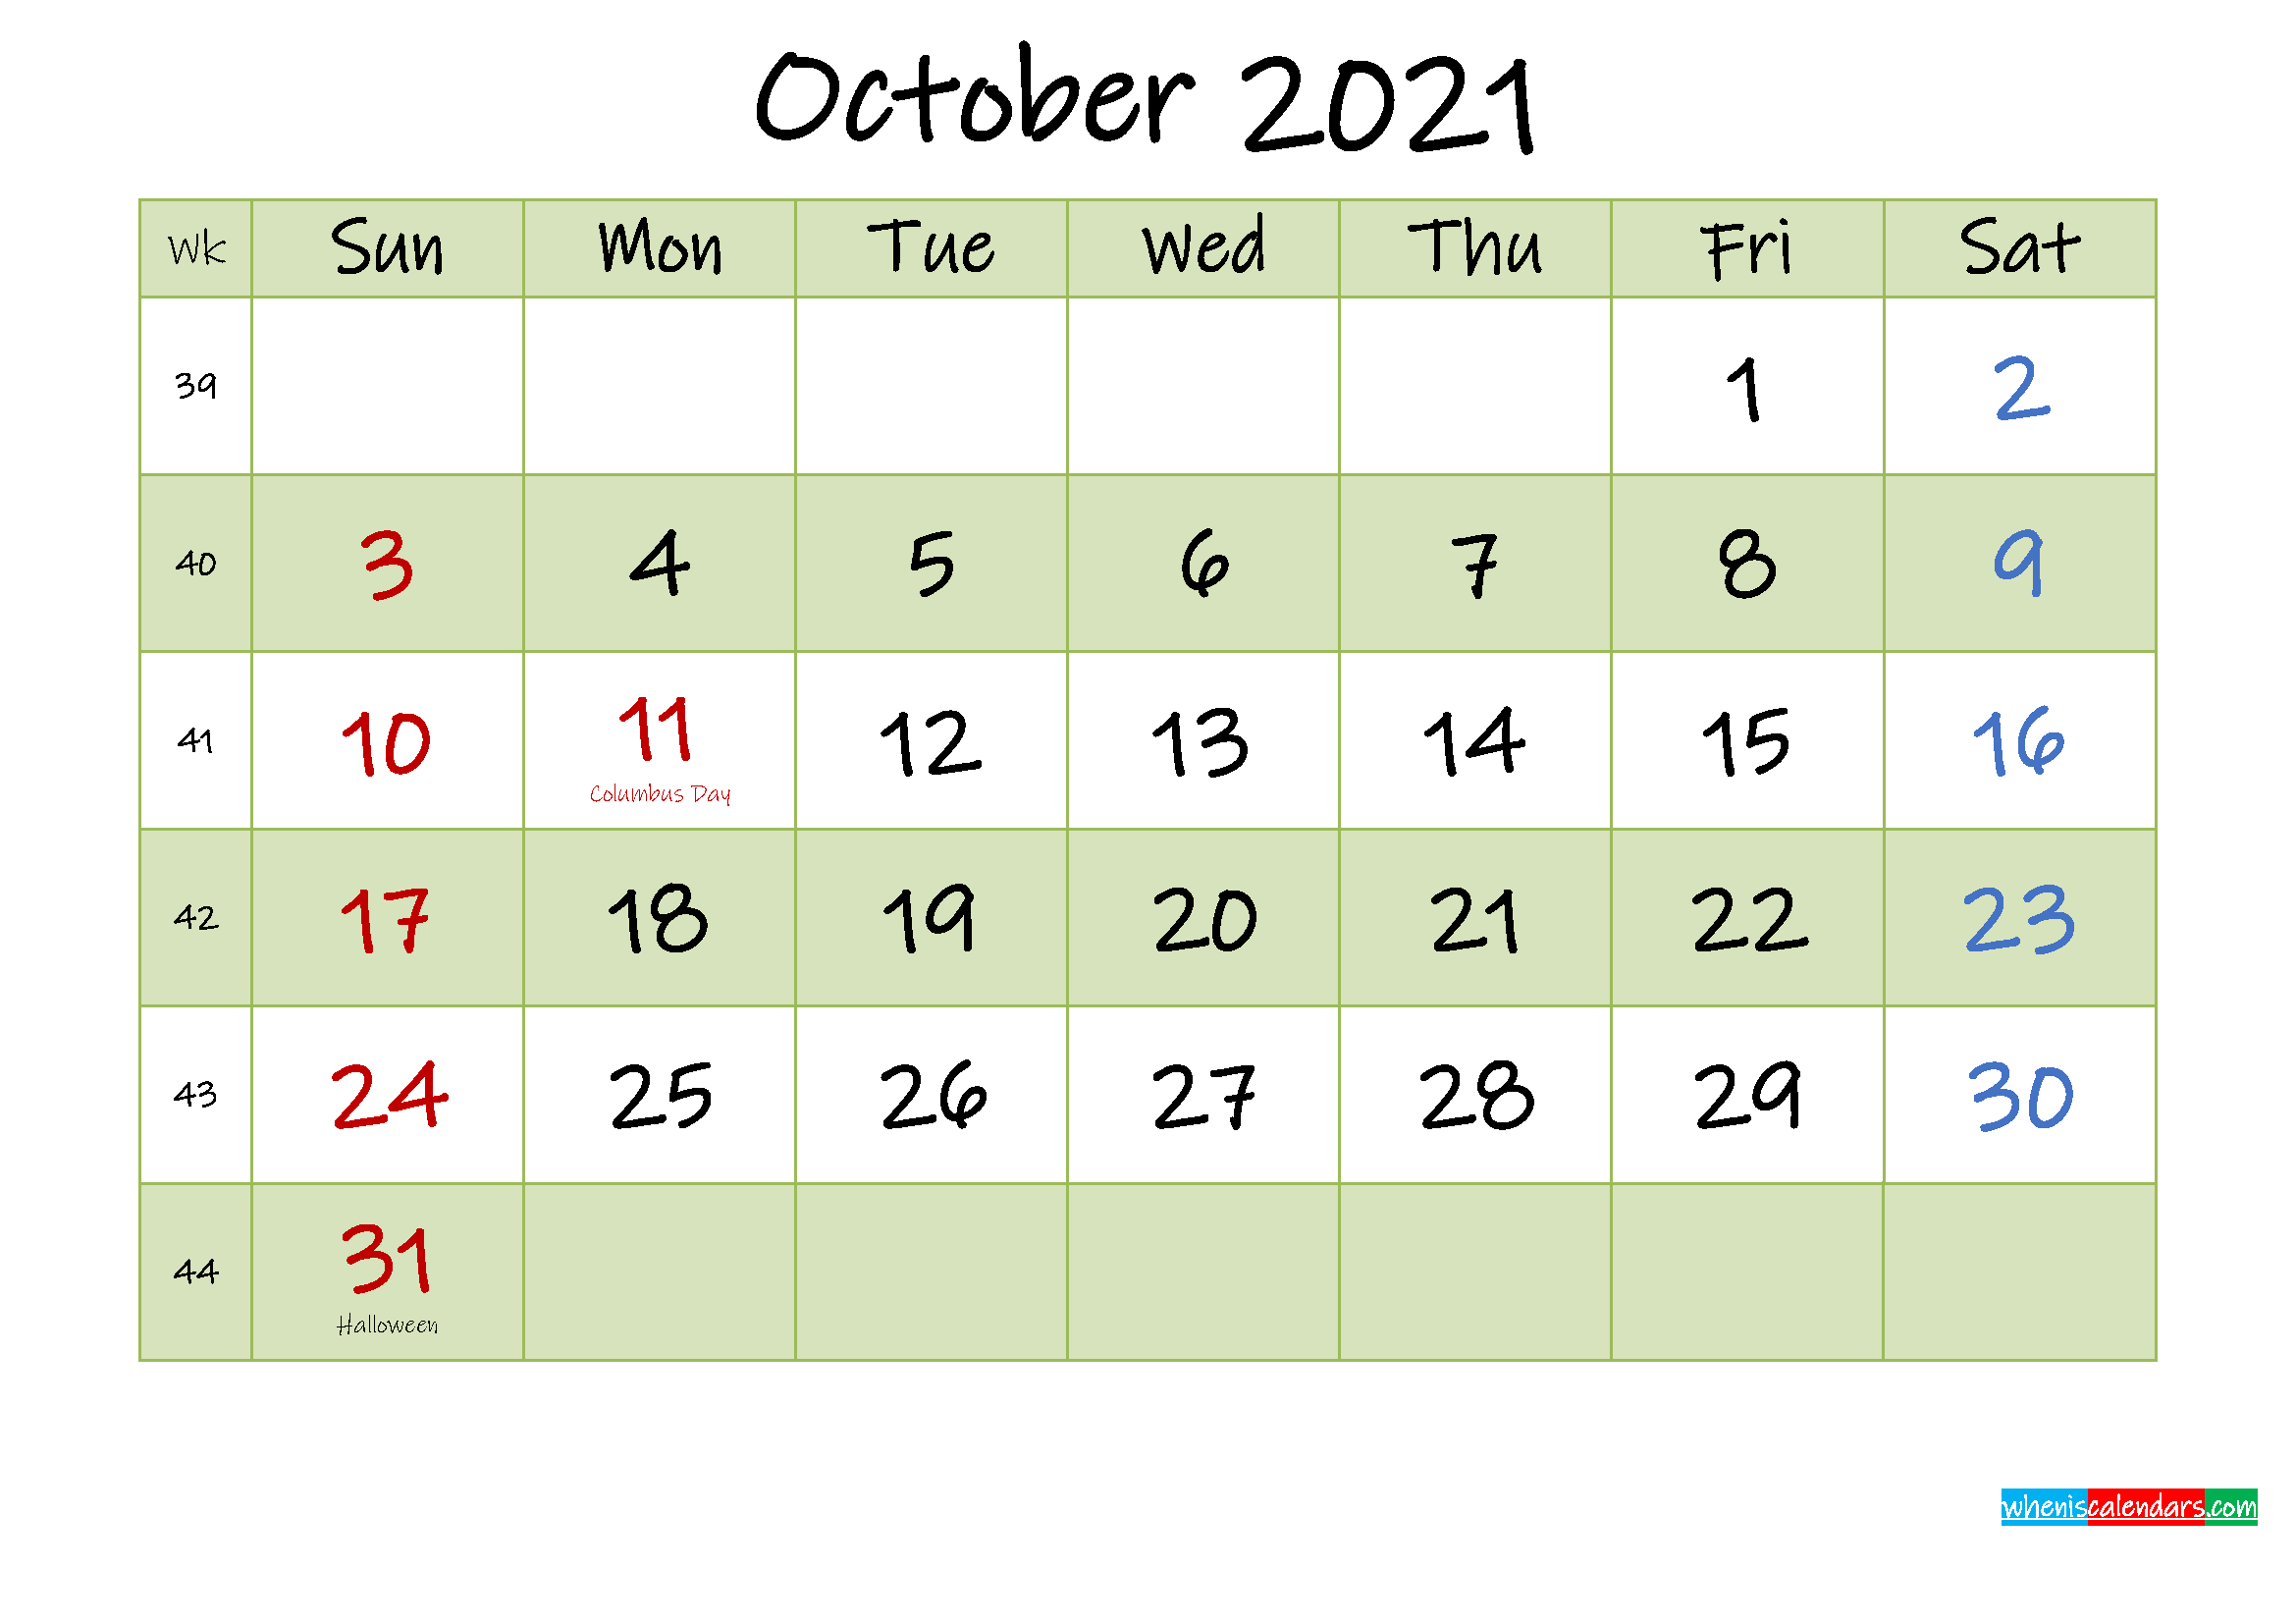 October 2021 Calendar with Holidays Printable